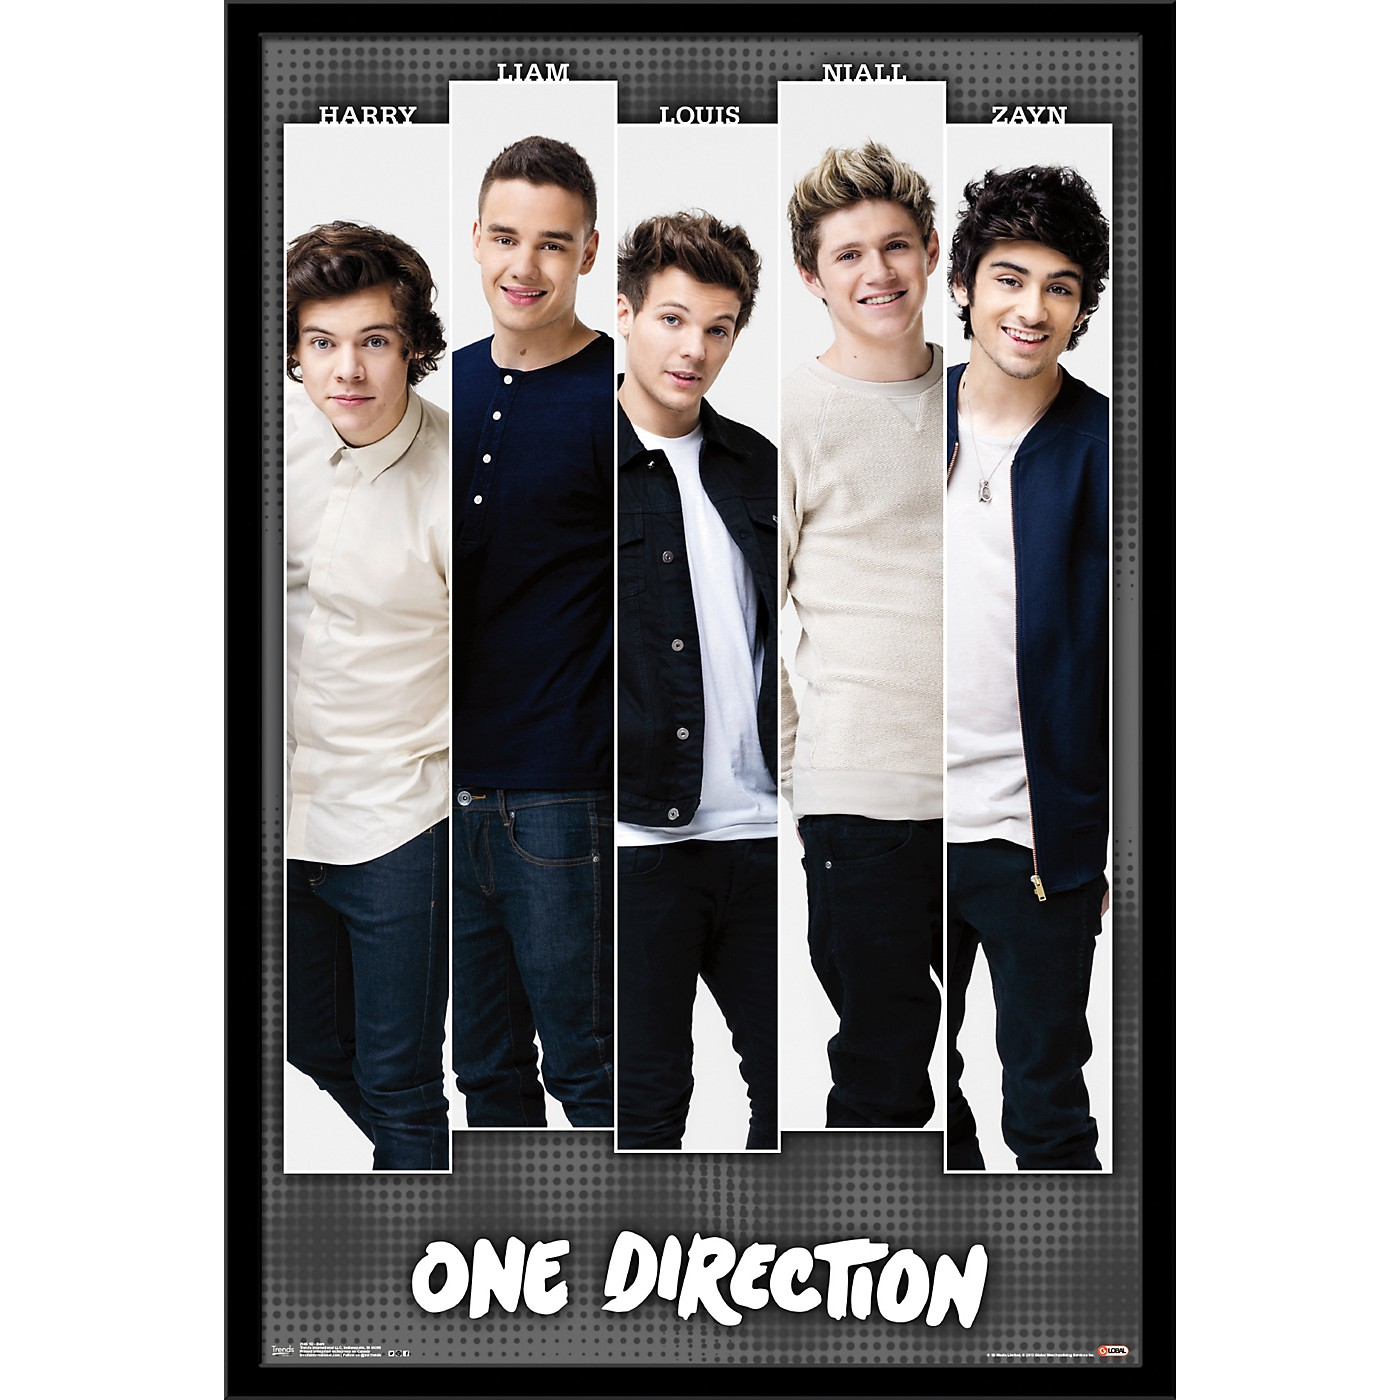 Trends International One Direction - Bars Poster thumbnail